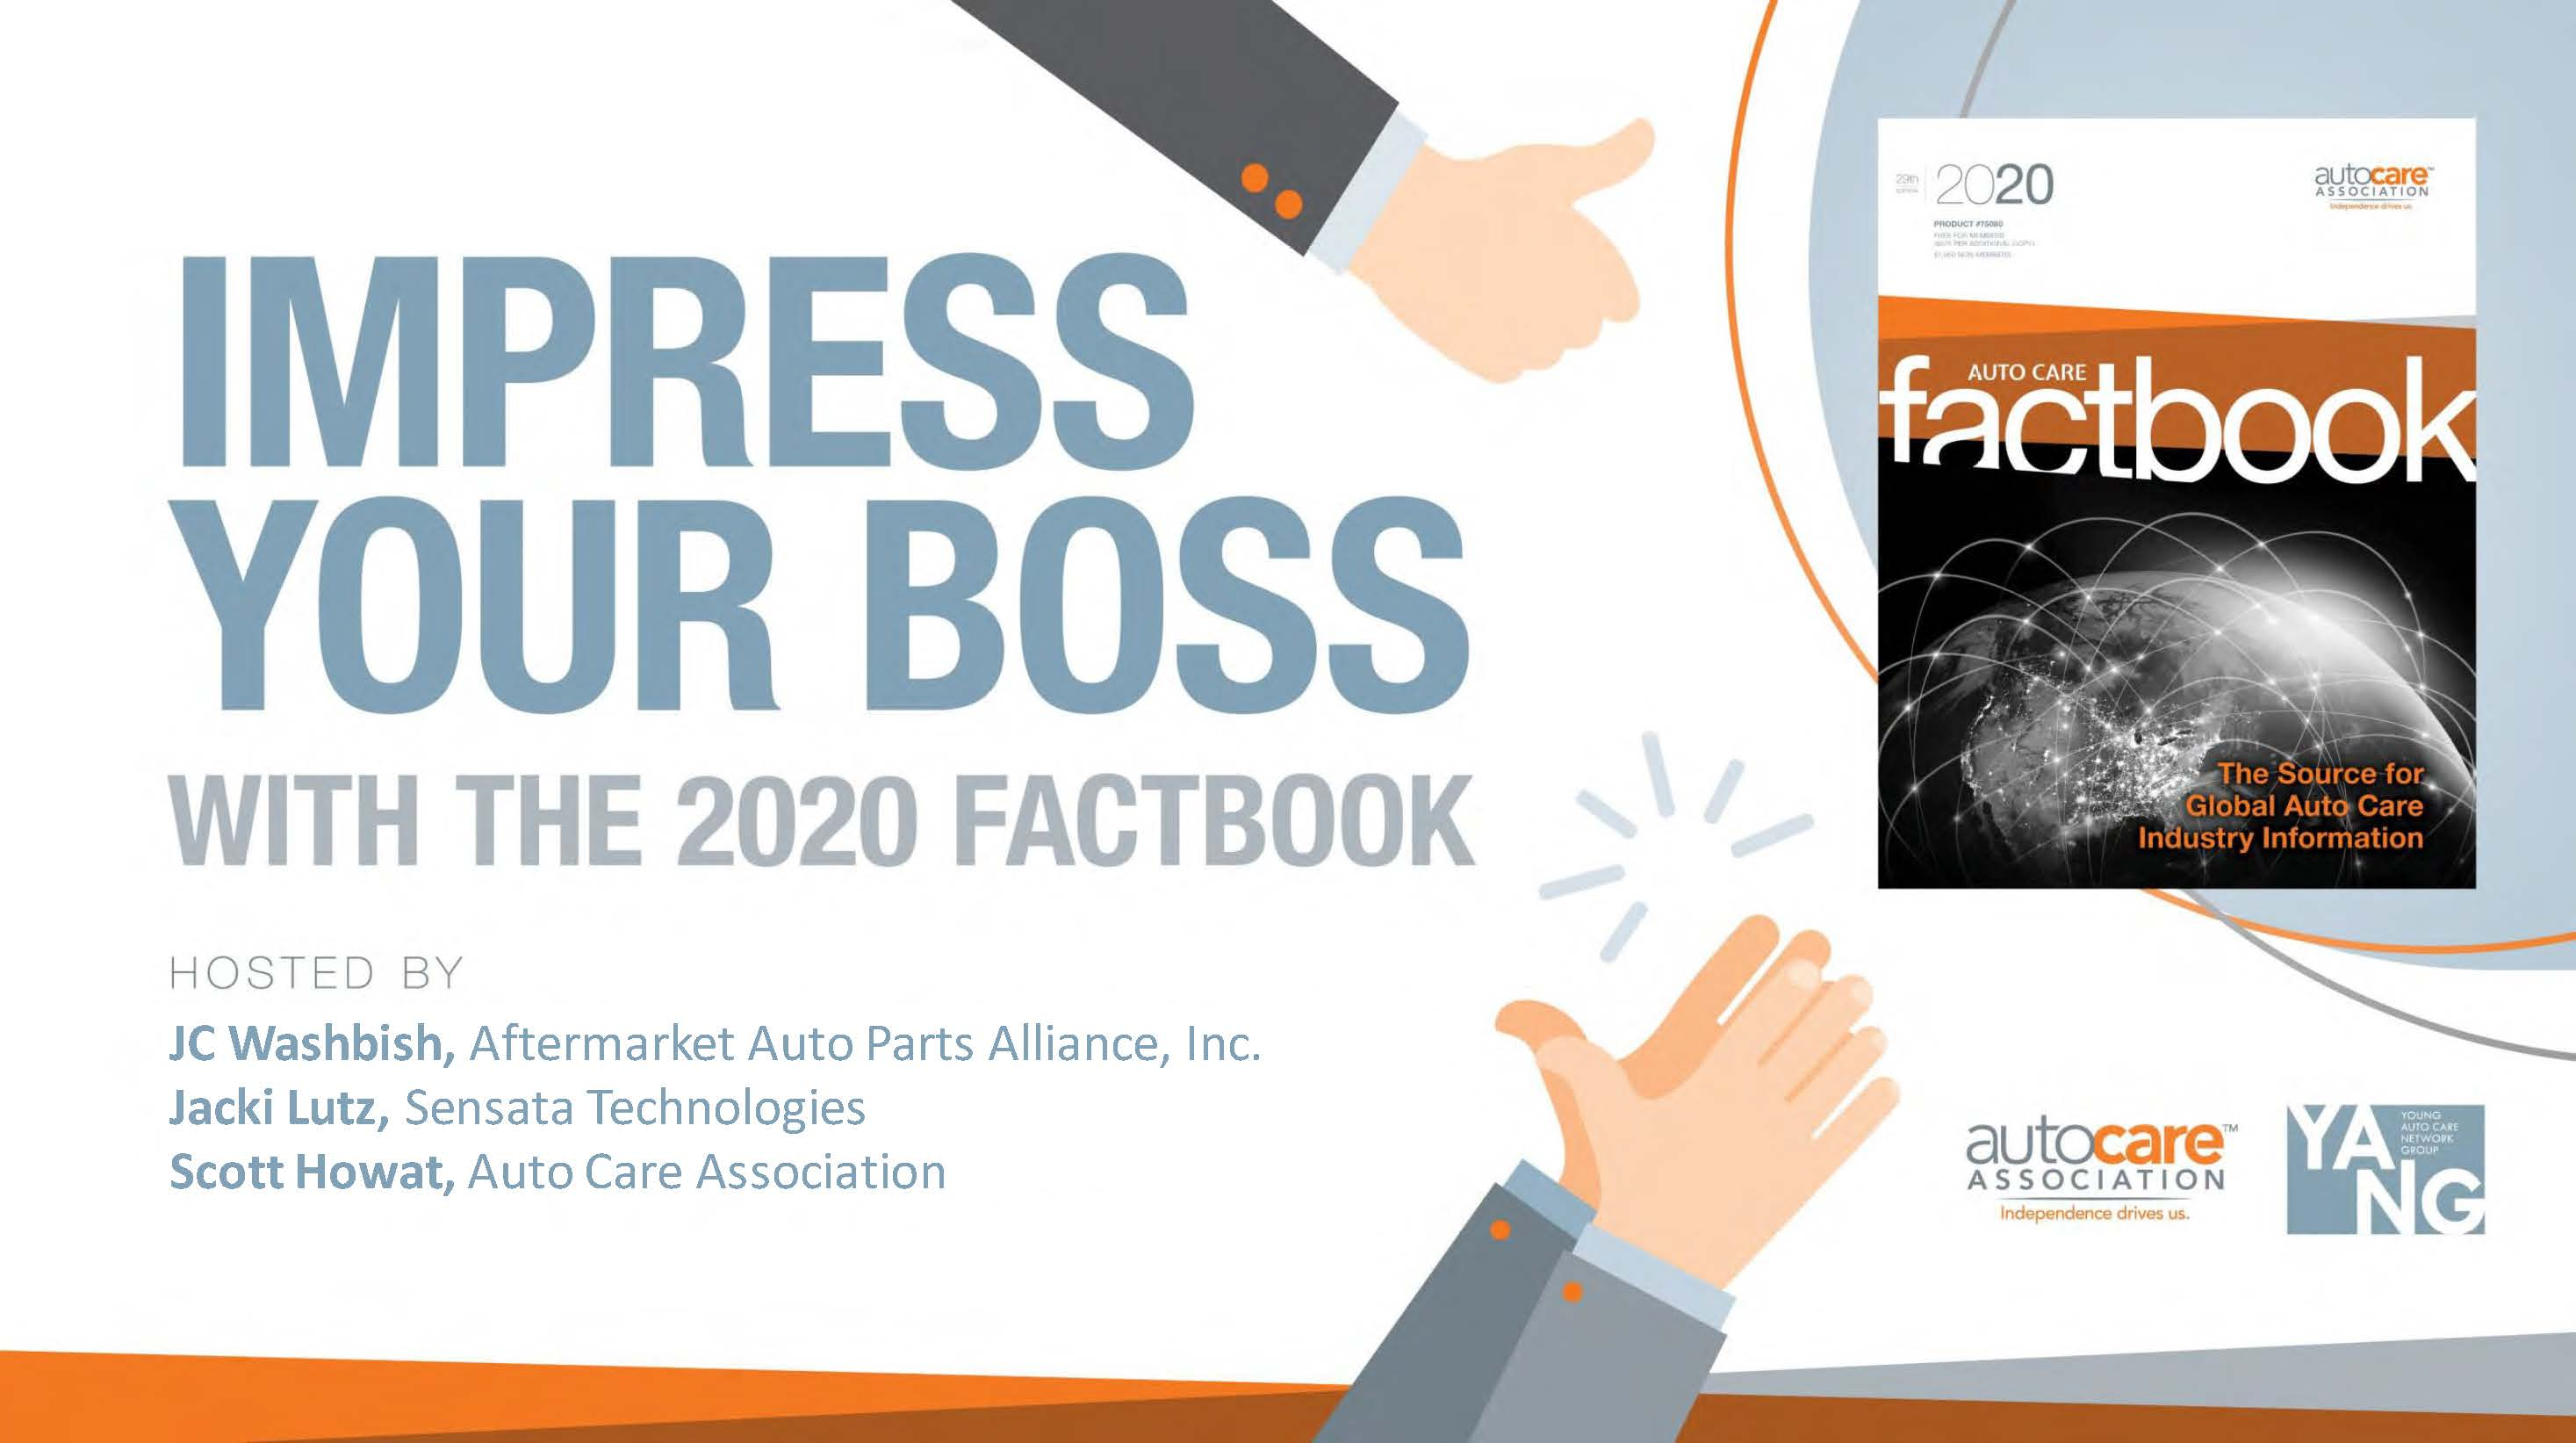 Impress Your Boss with the Factbook 2020 cover image